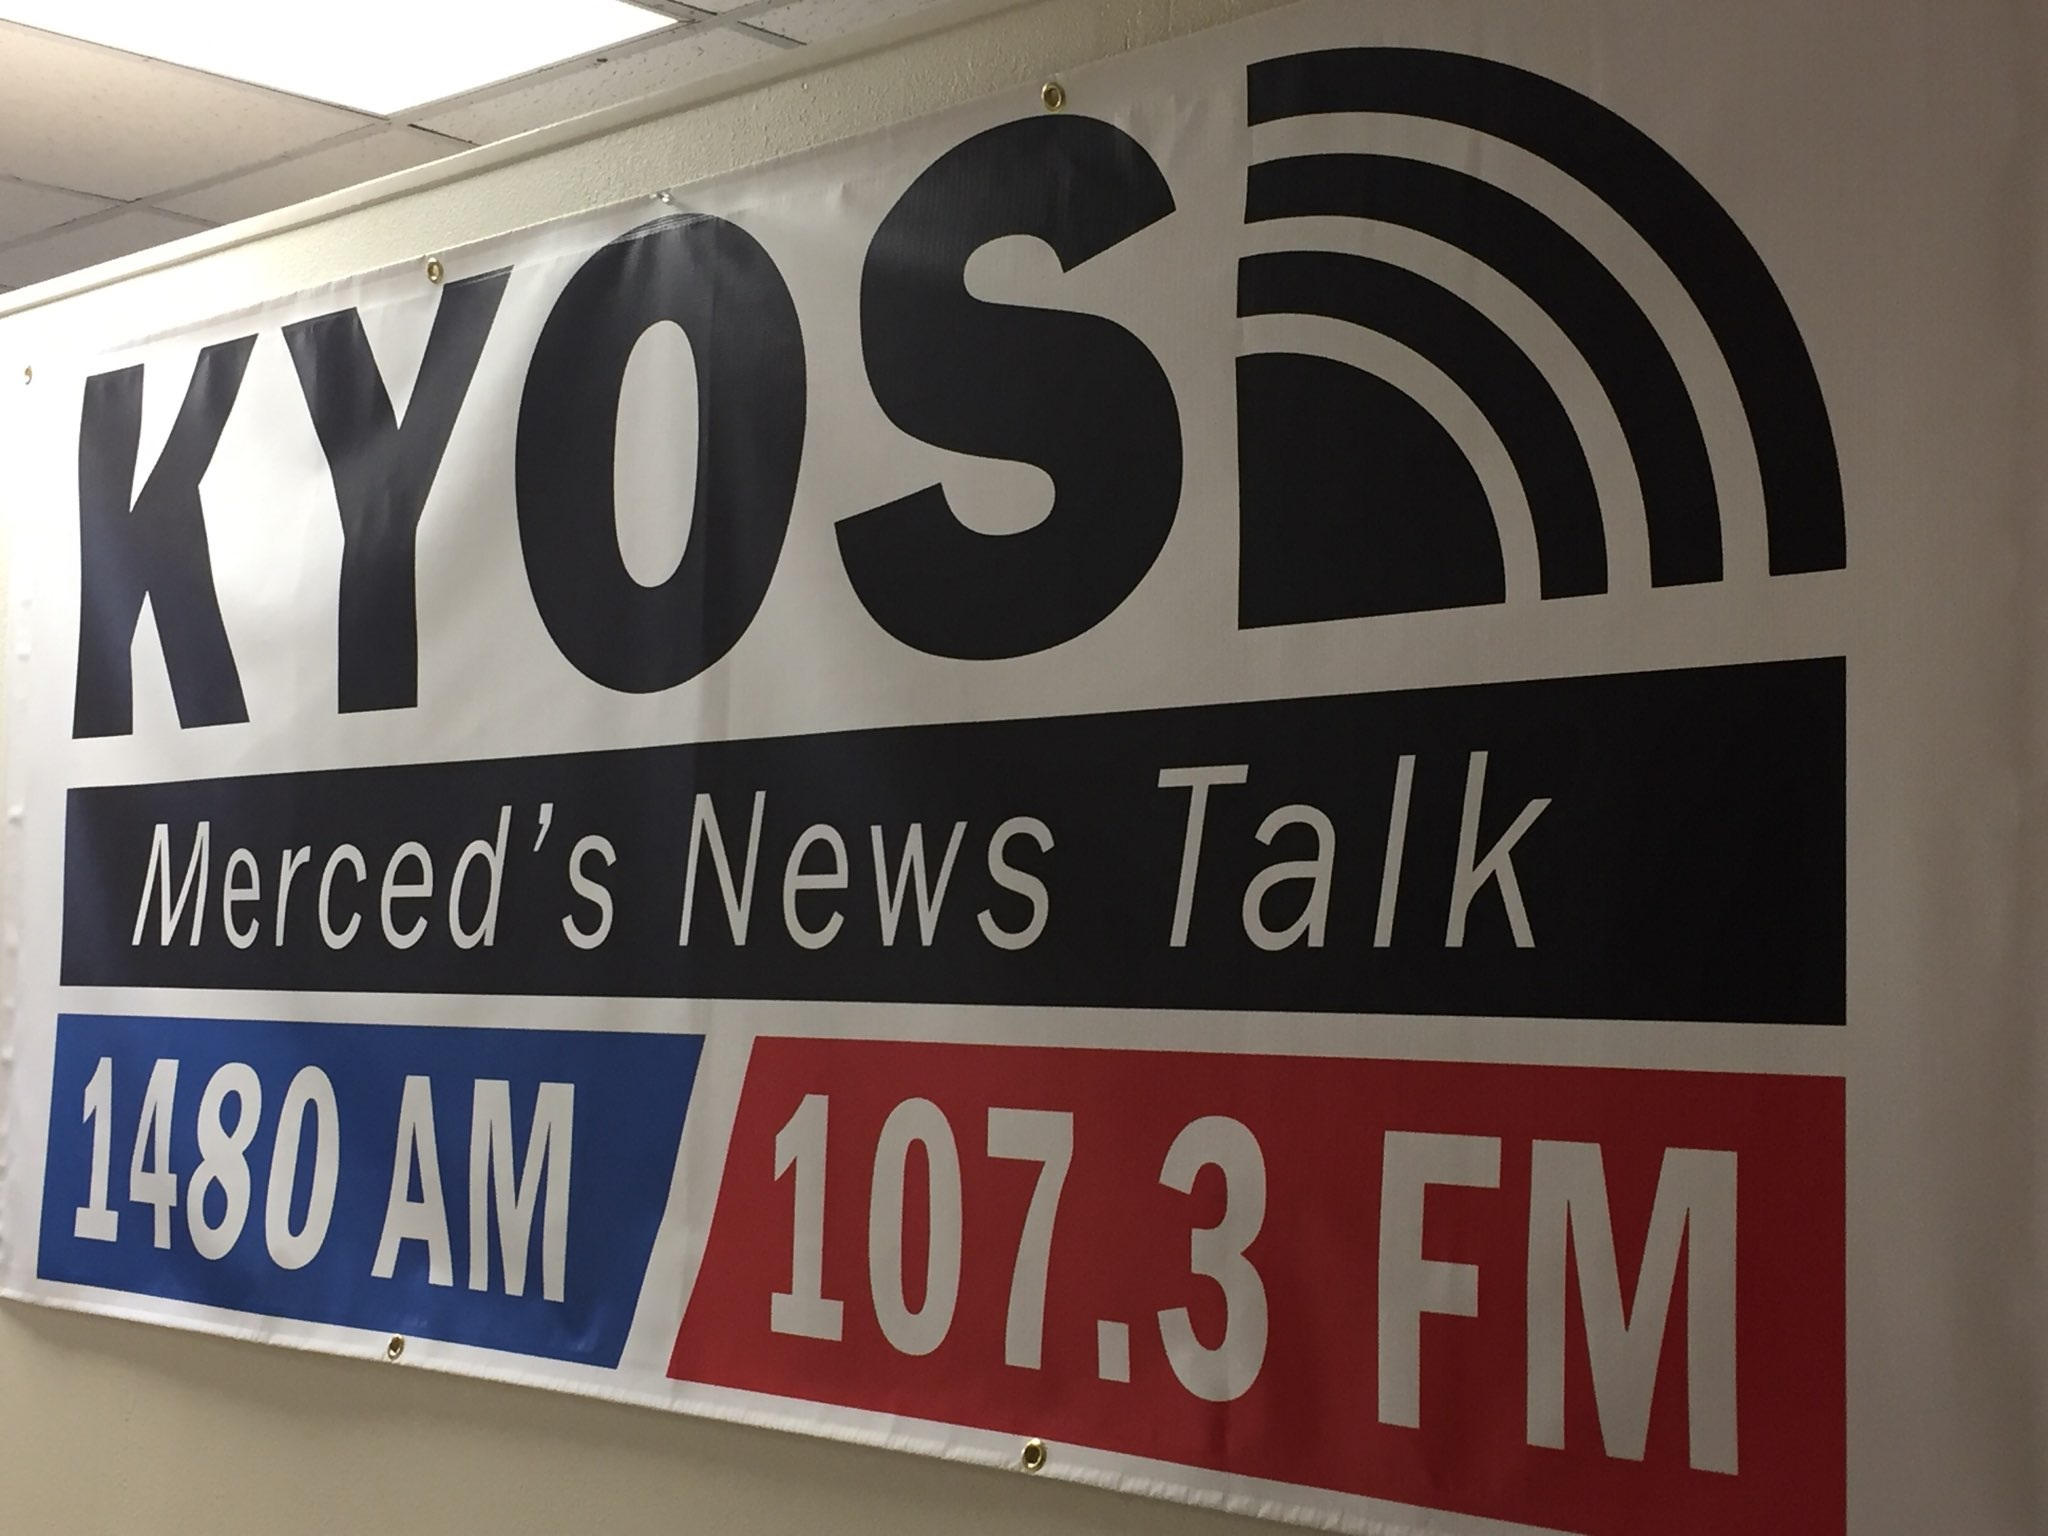 Community Conversations is public service program of KYOS, AM 1480, in Merced.